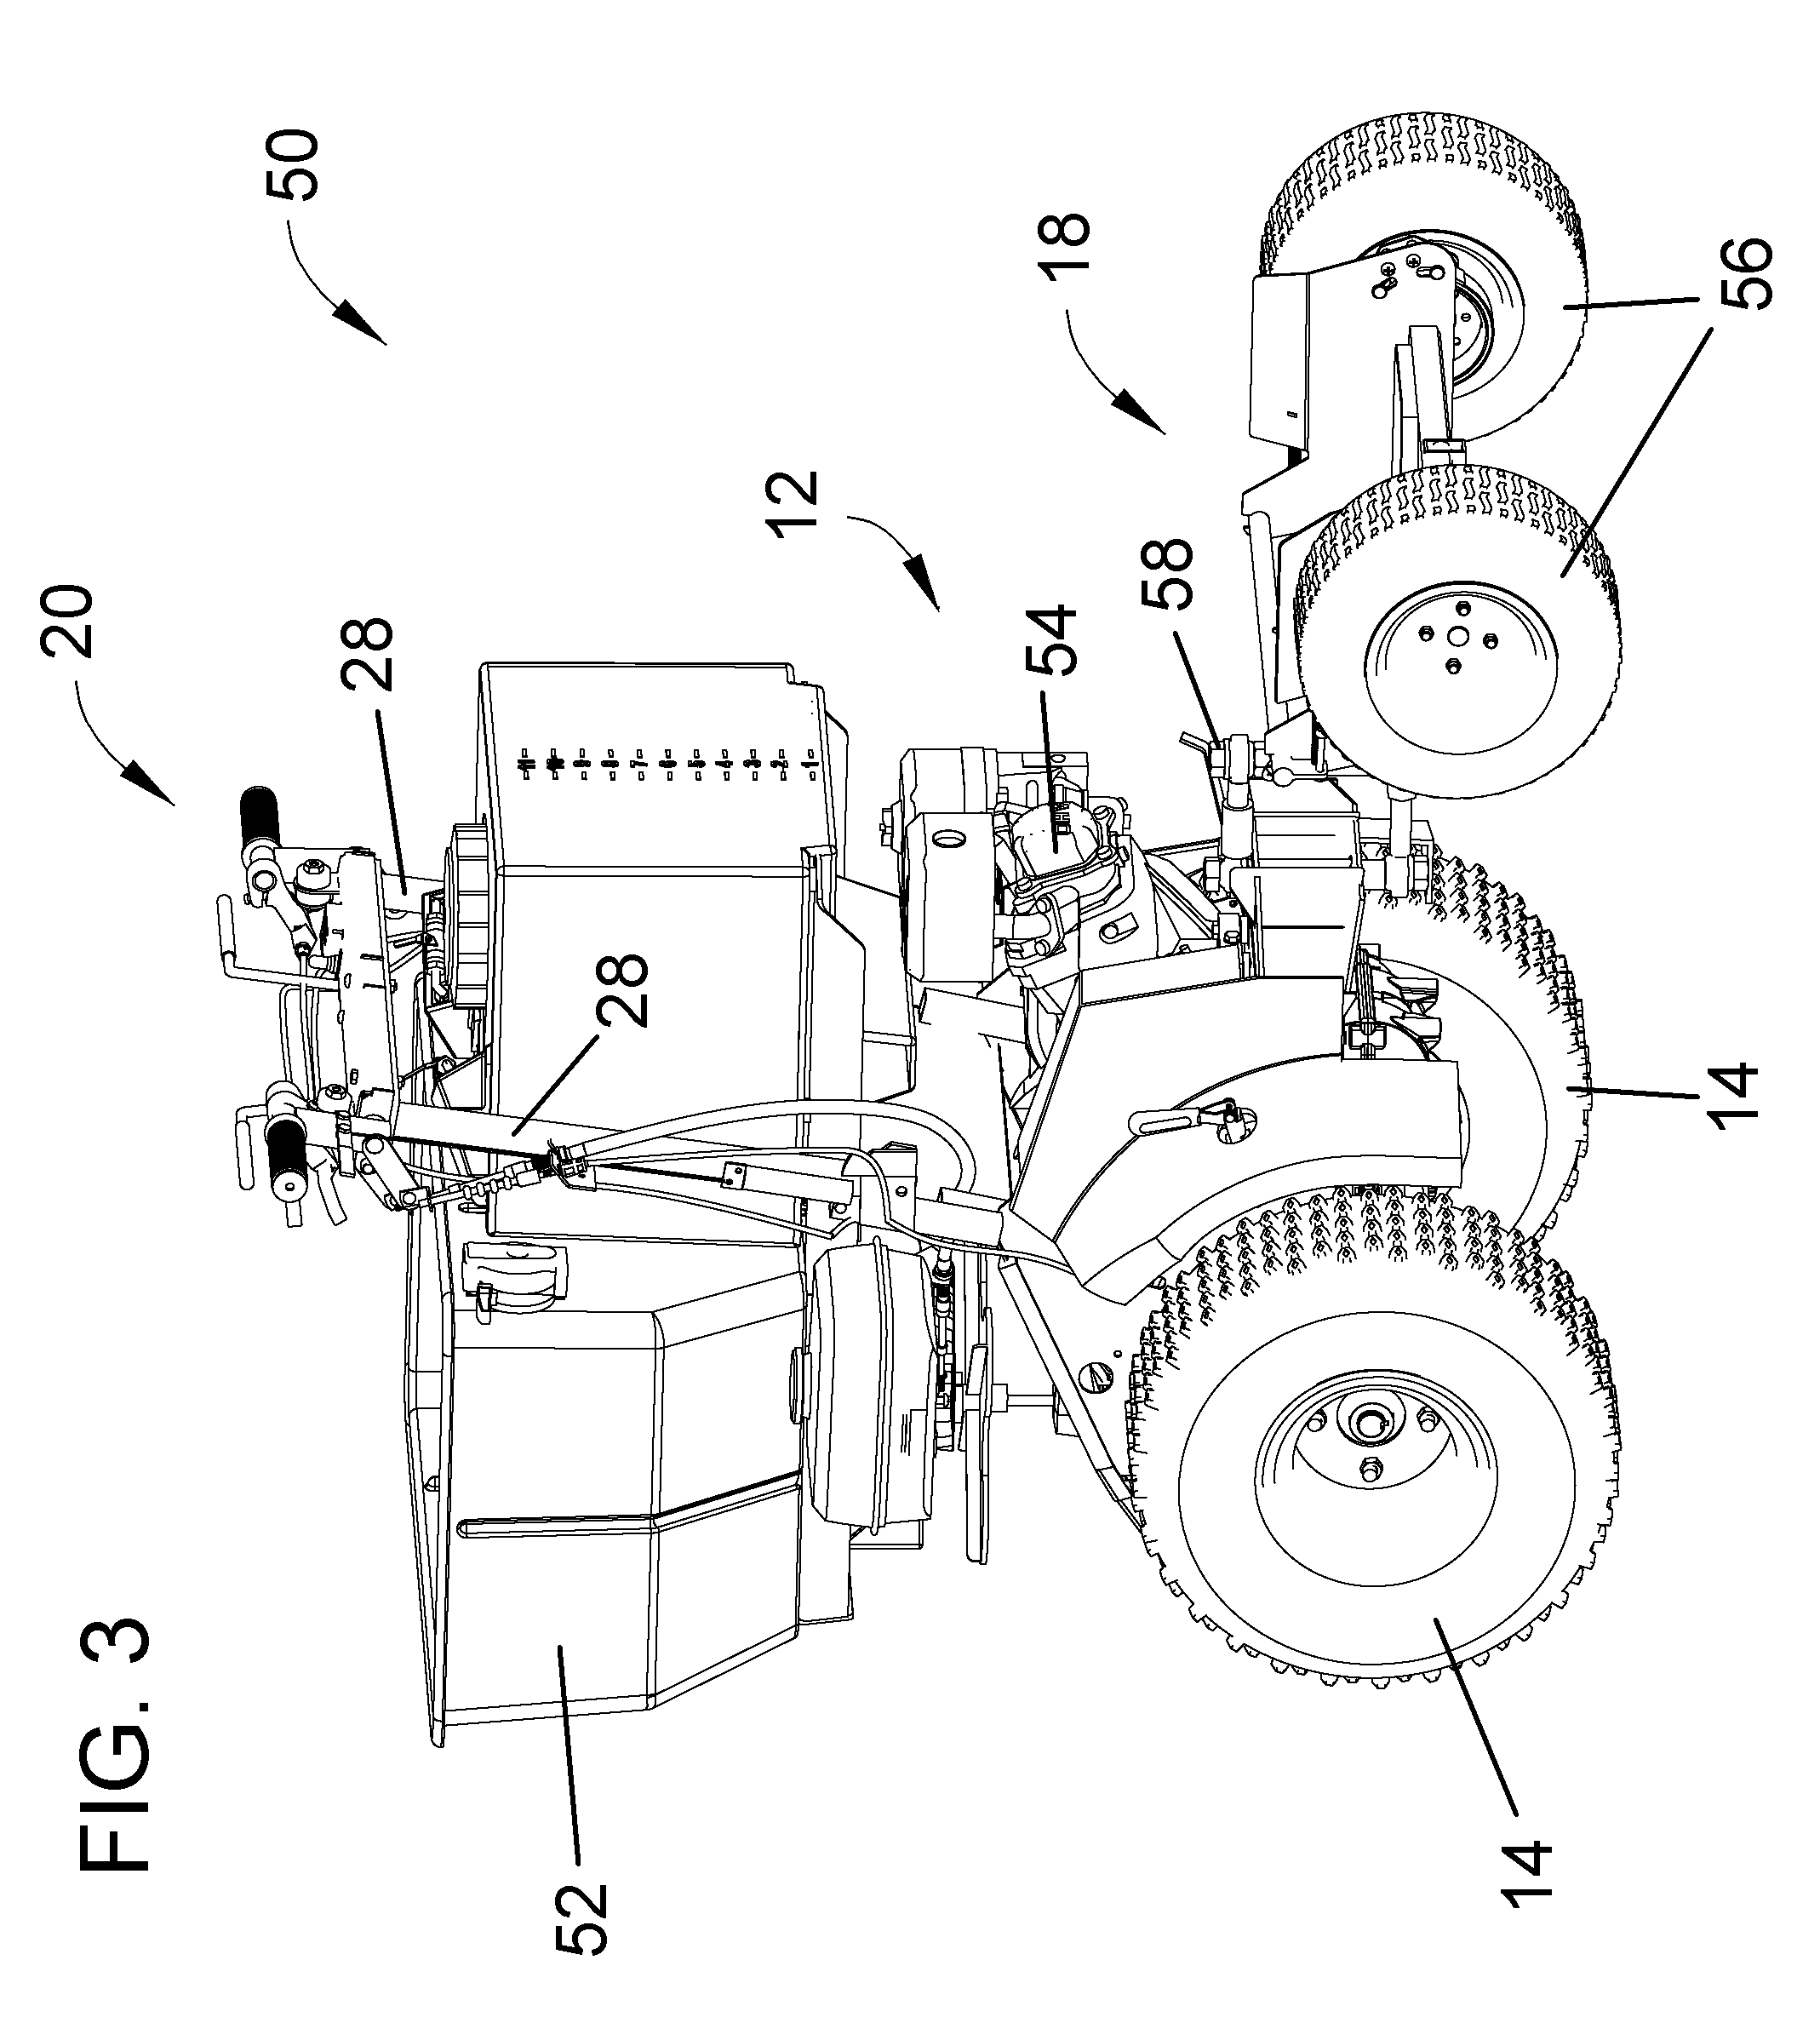 Patent US7954573 - Drive-steering control system and